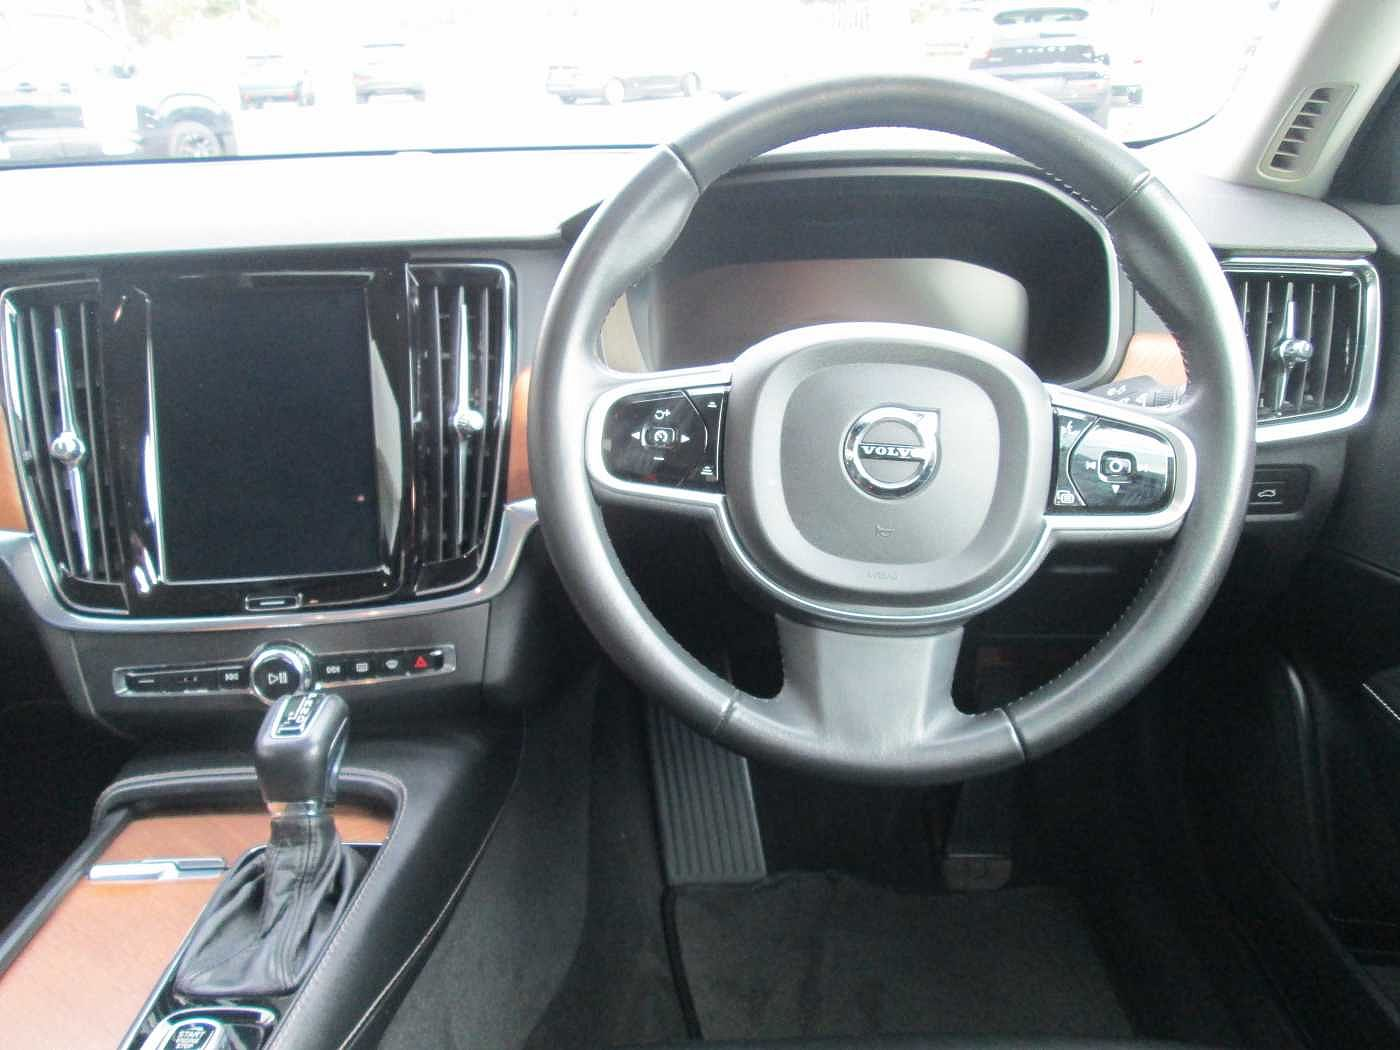 Volvo  D4 Inscription ( Automatic, Adaptive Cruise Control, Leather)